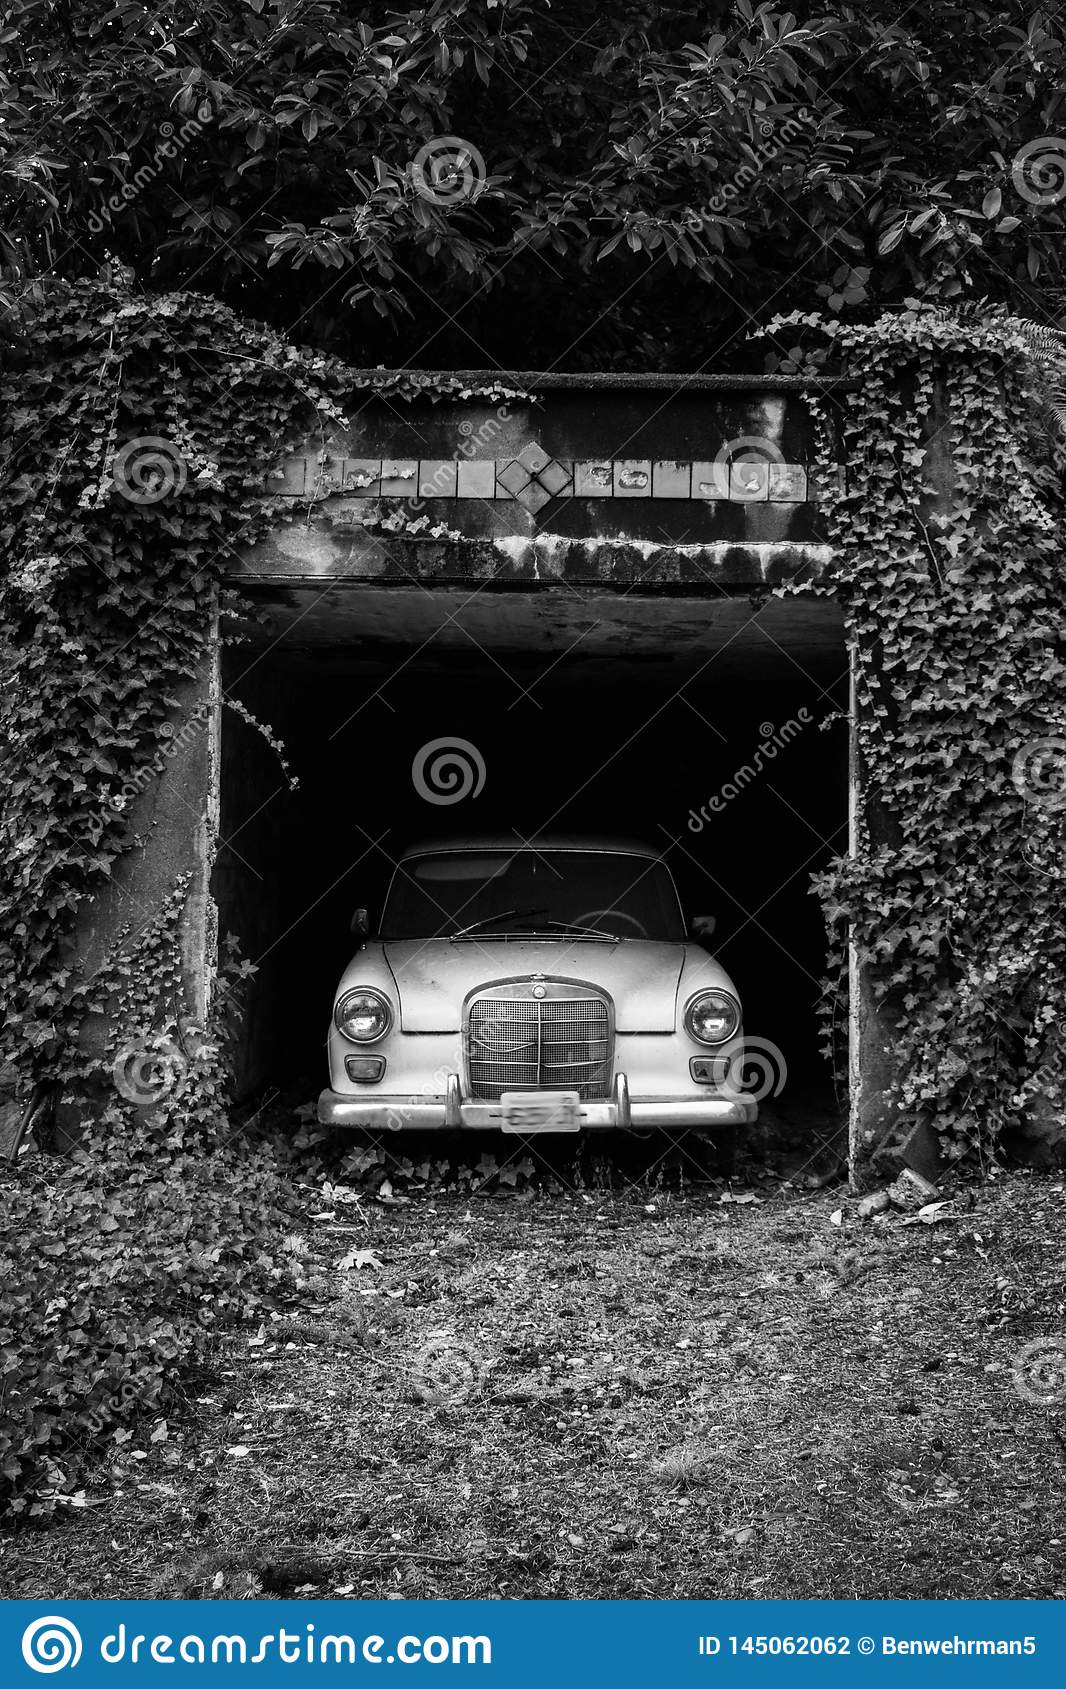 Old Car in an Overgrown Driveway